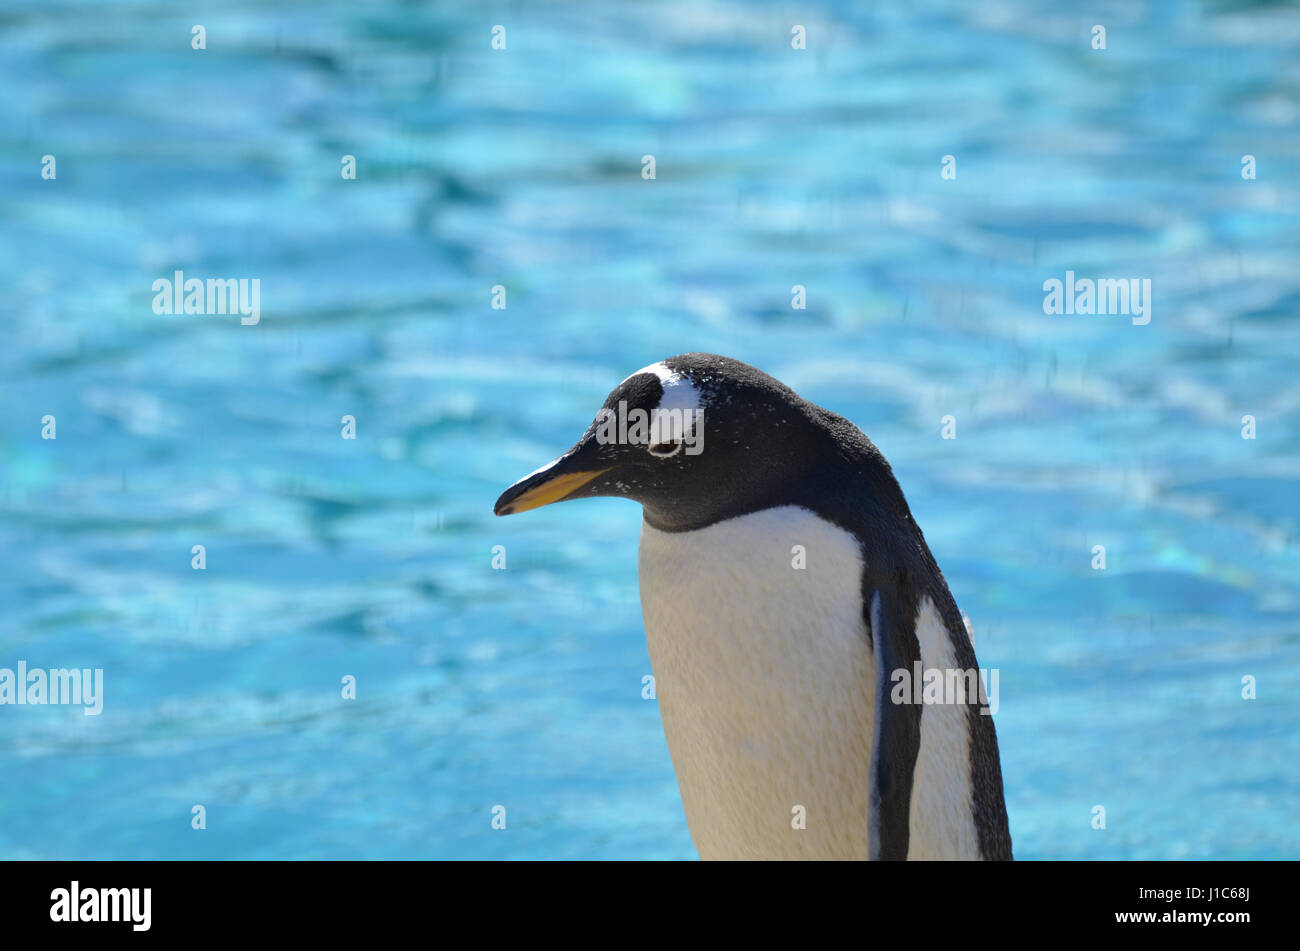 Great capture of a gentoo penguin standing in front of a body of water. - Stock Image